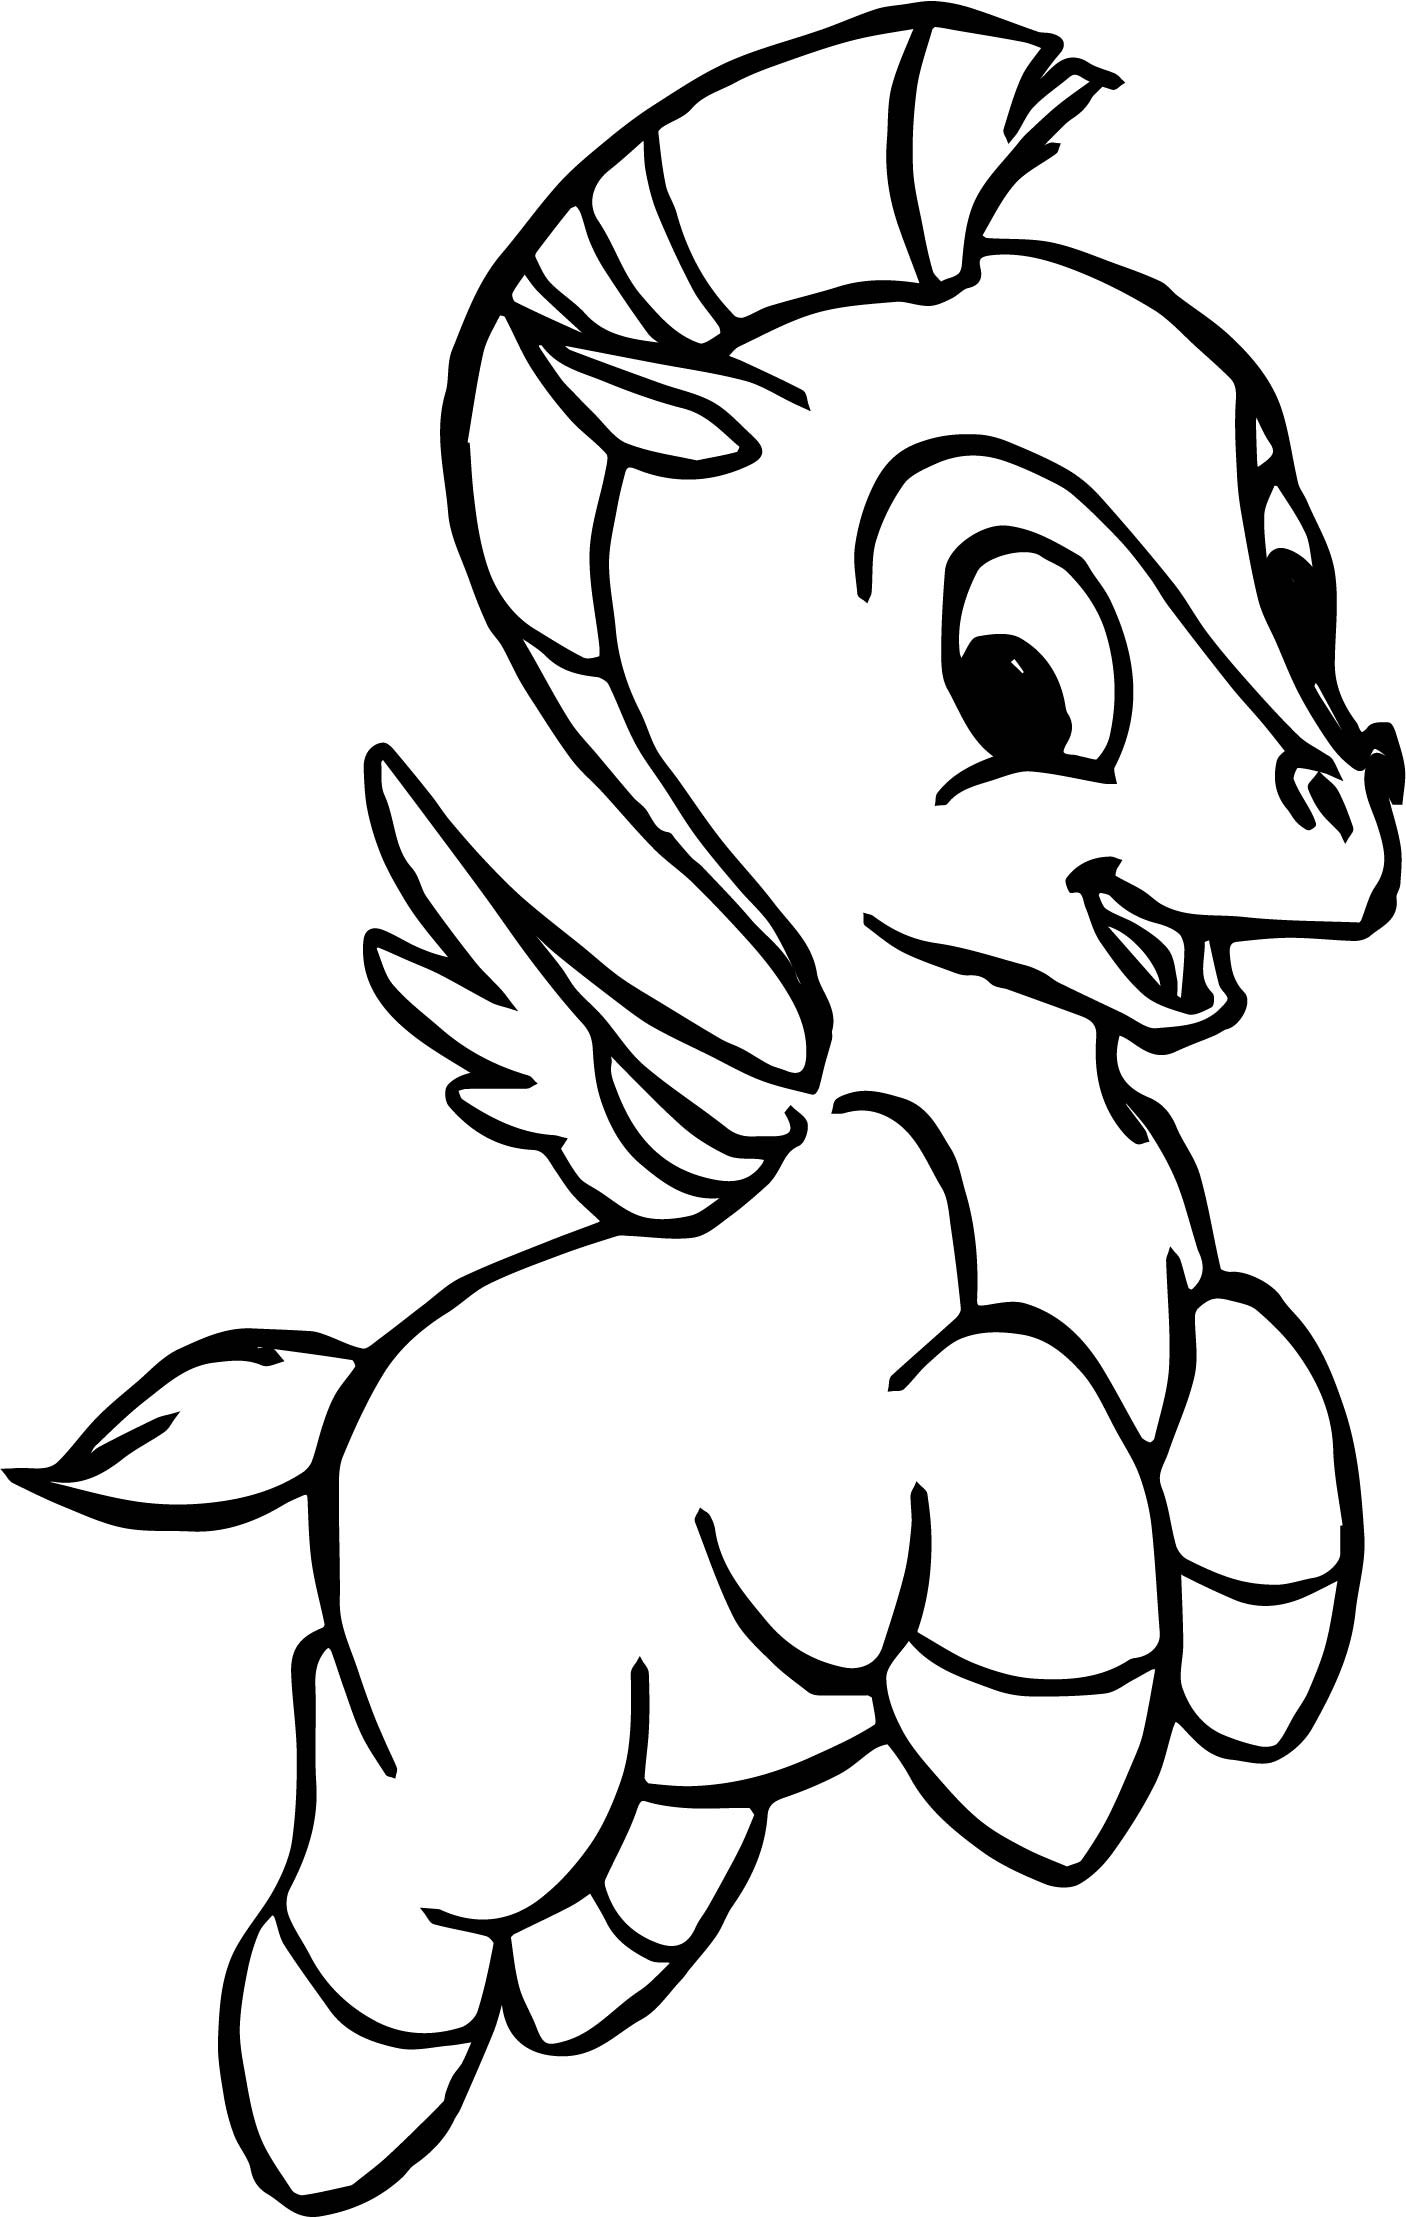 1406x2218 Special Pegasus Coloring Pages Freecolorngpages Co